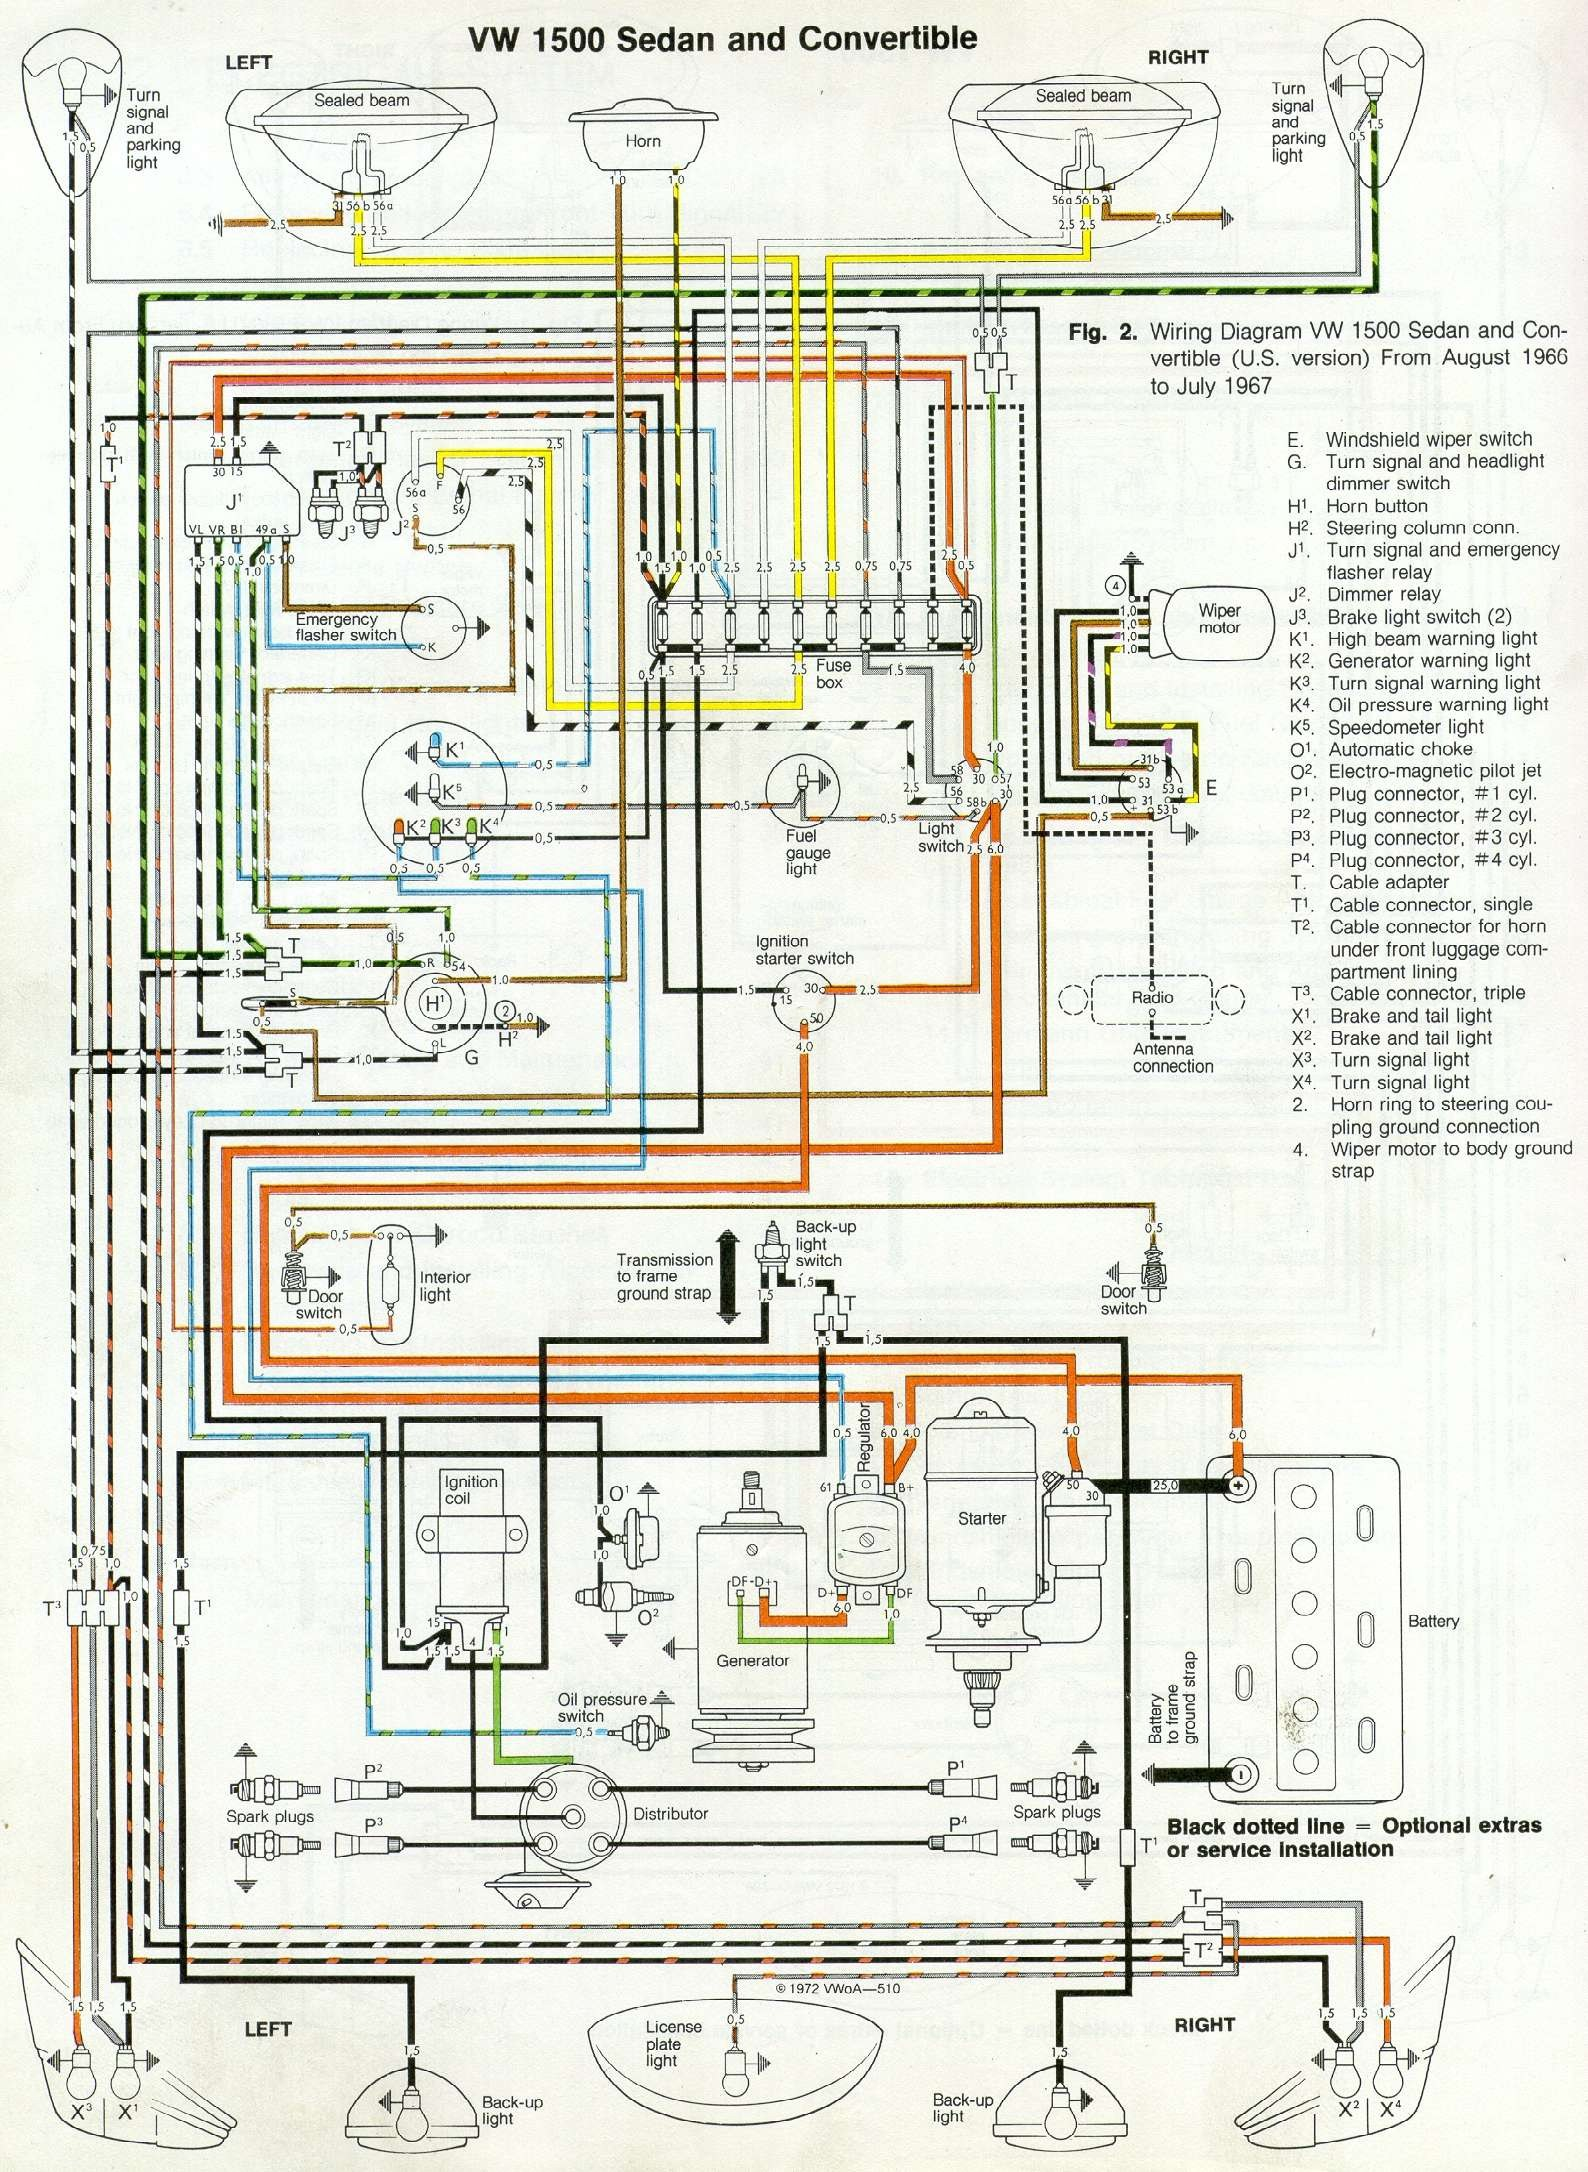 1968 Vw Beetle Emergency Flasher Relay Wiring Diagram Reinvent Switch 1967 Harness Schematics Diagrams U2022 Rh Schoosretailstores Com Ignition Headlight